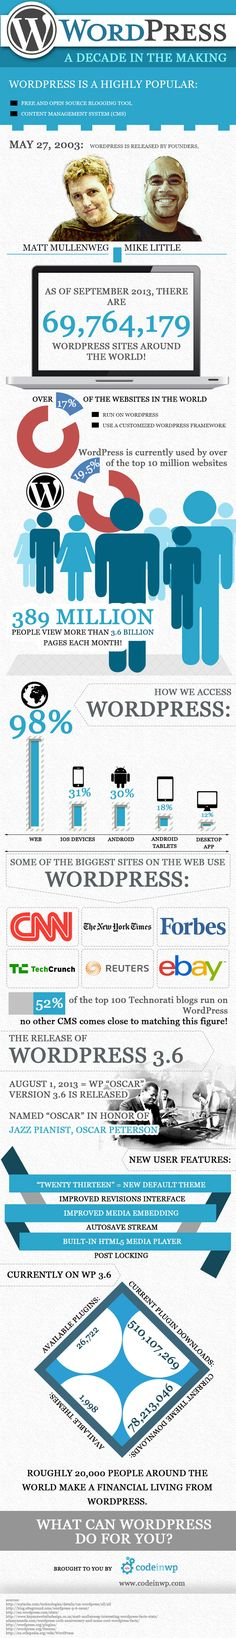 http://ajiboye.digimkts.com Only $19 WordPress: a Decade in the Making, an infographic - http://hosting.ber-art.nl/wordpress-a-decade-in-the-making-an-infographic /@Ber|Art Visual Design V.O.F. - #SEO